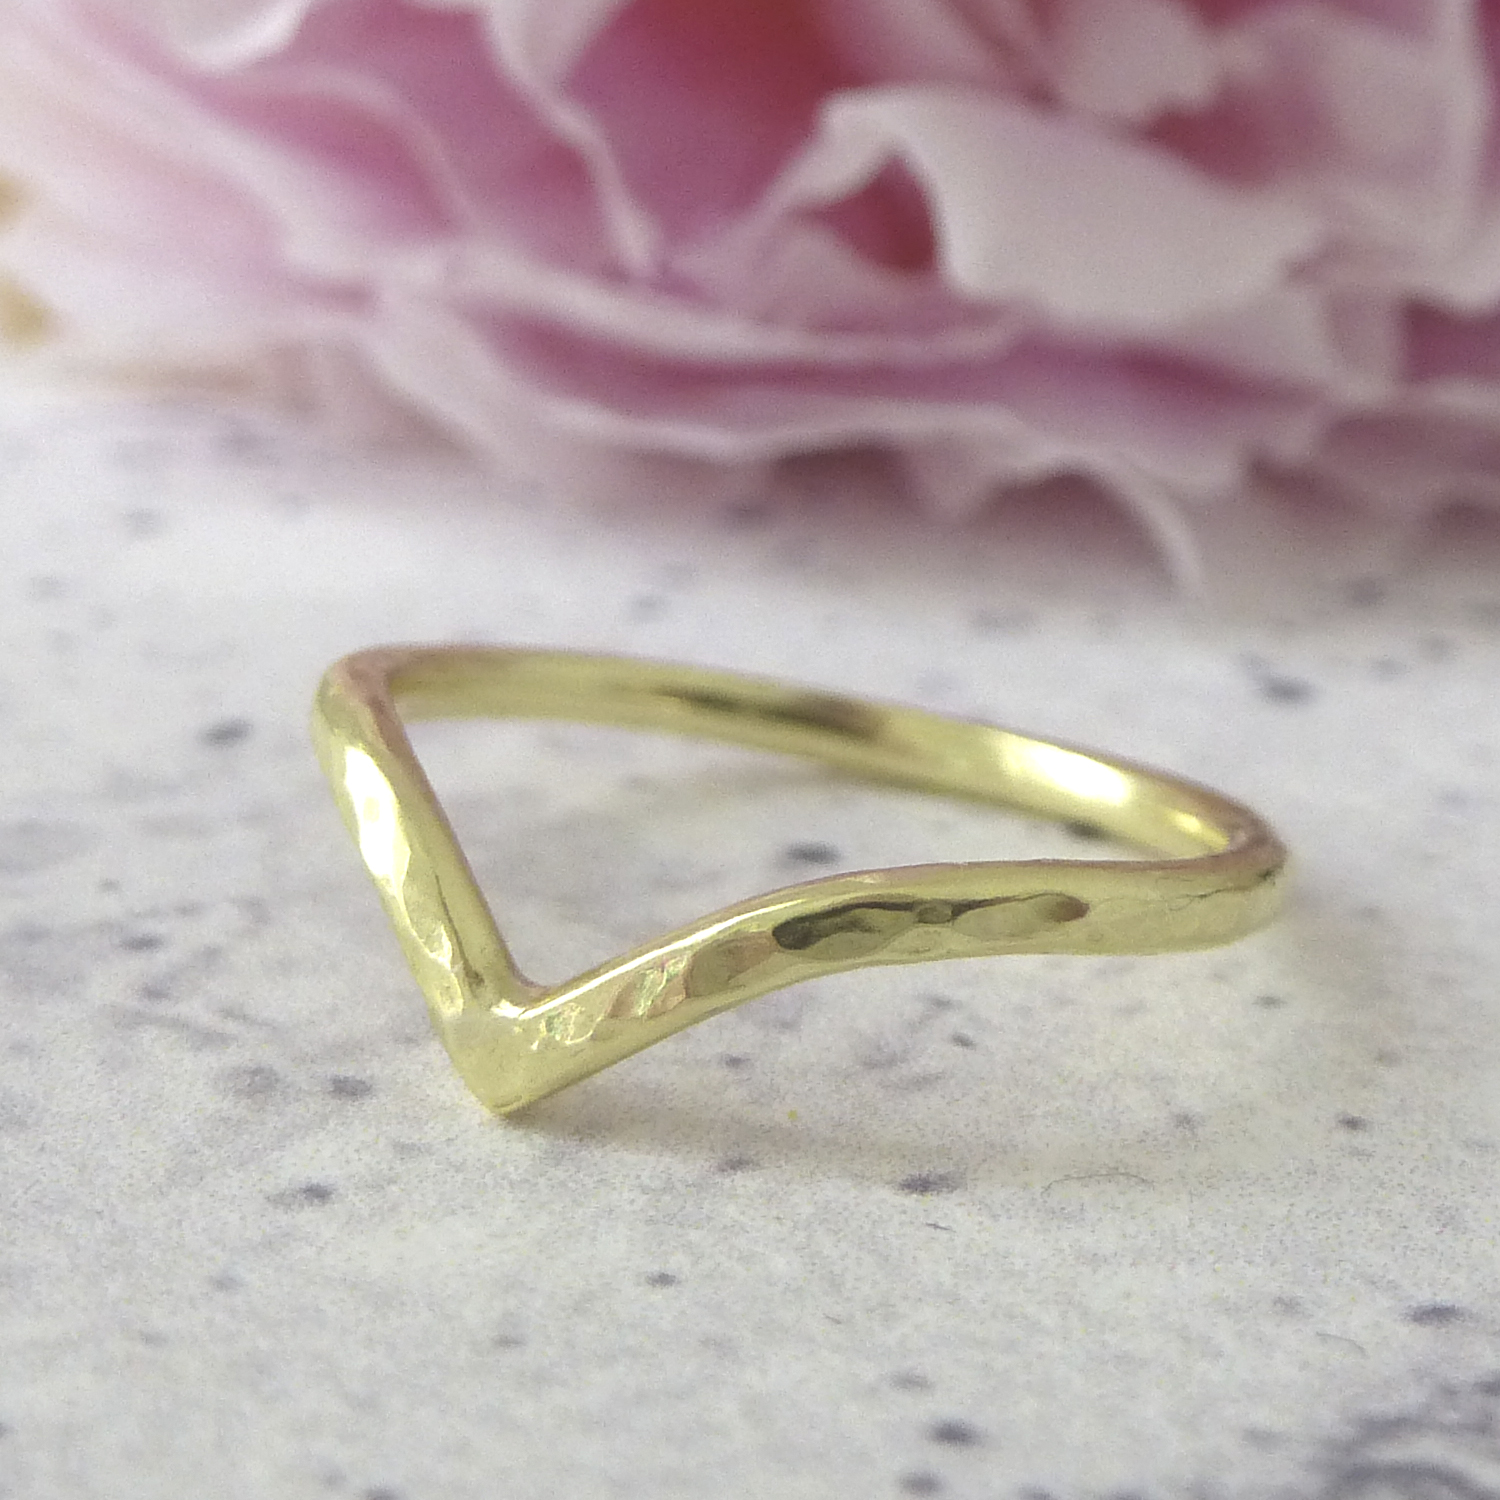 nikki stark jewellery, wedding band, gold wishbone wedding band